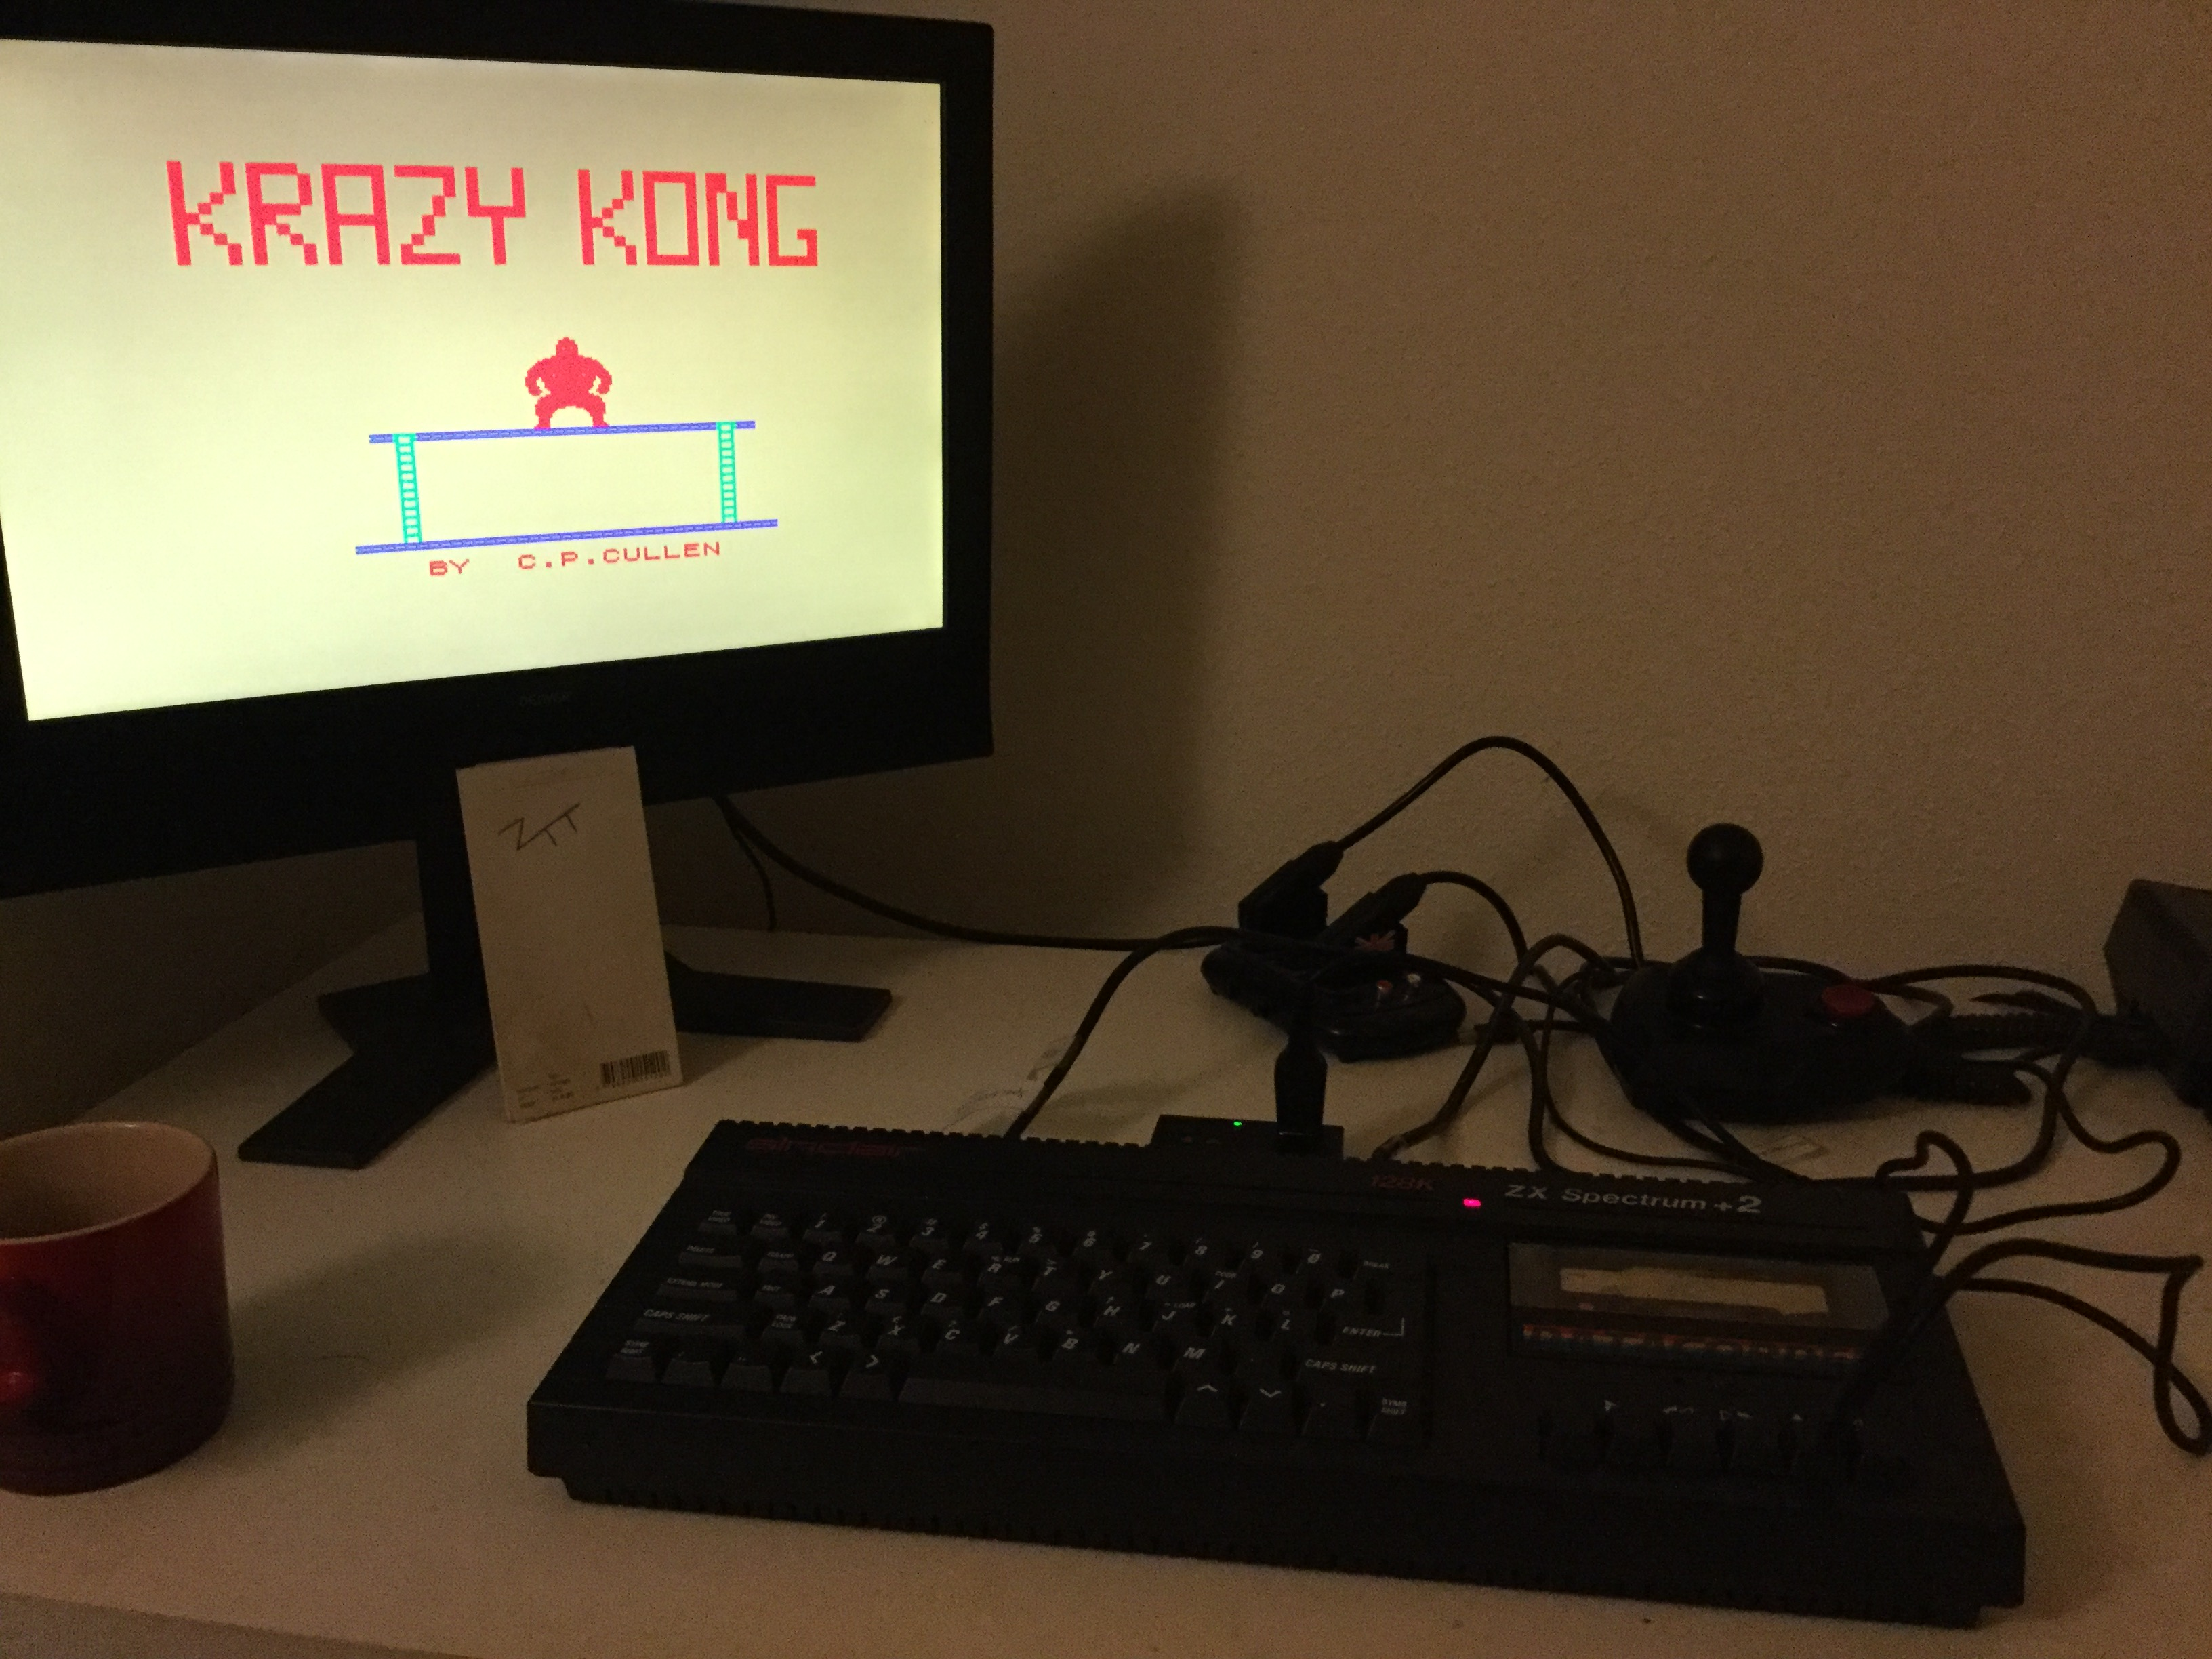 Frankie: Krazy Kong [PSS] (ZX Spectrum) 5,330 points on 2019-12-14 04:03:47